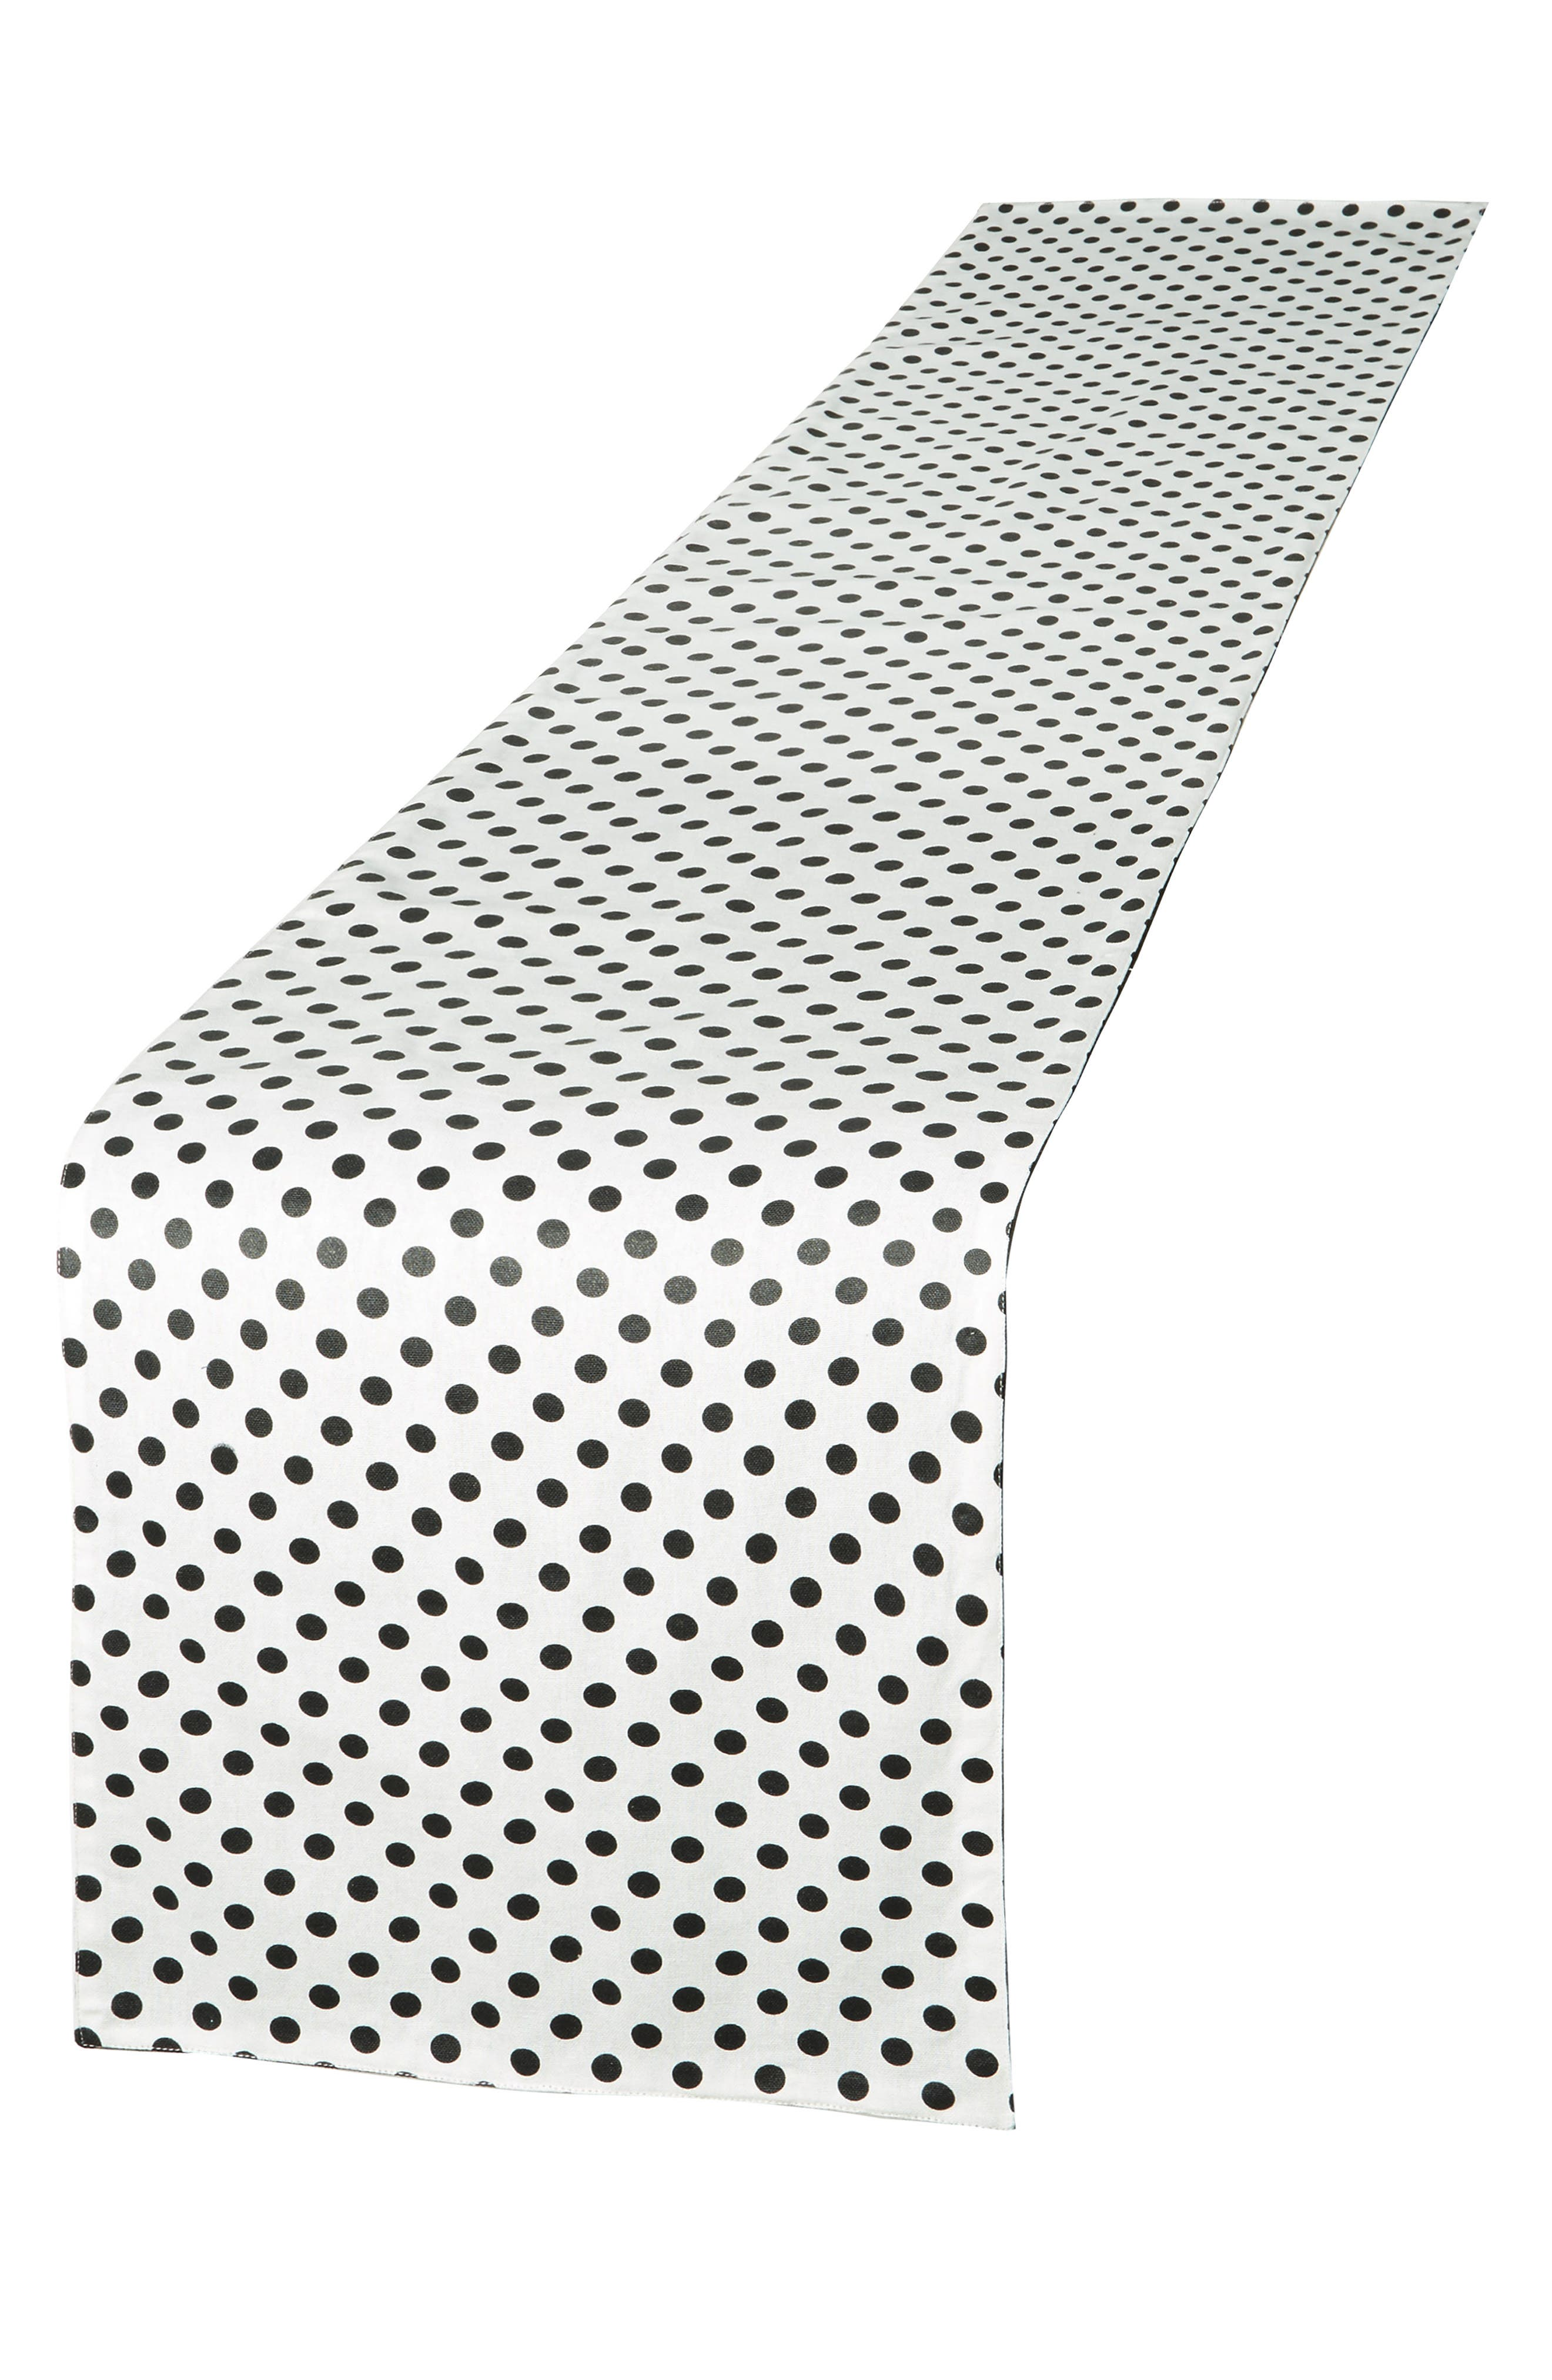 ampersand table runner, Main, color, 001